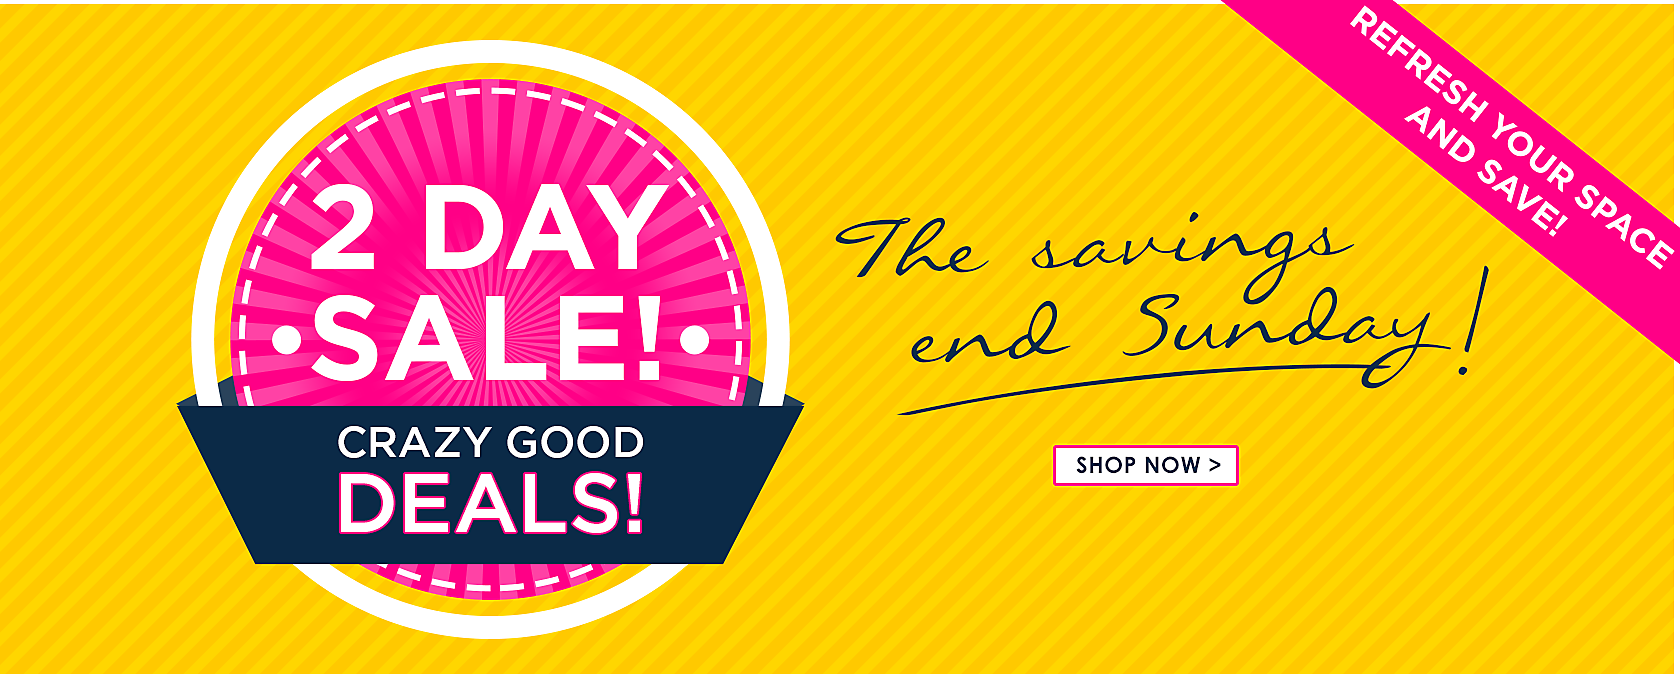 2 Day Sale - Crazy good deals - The savings end Sunday - refresh your space and save - Shop Now